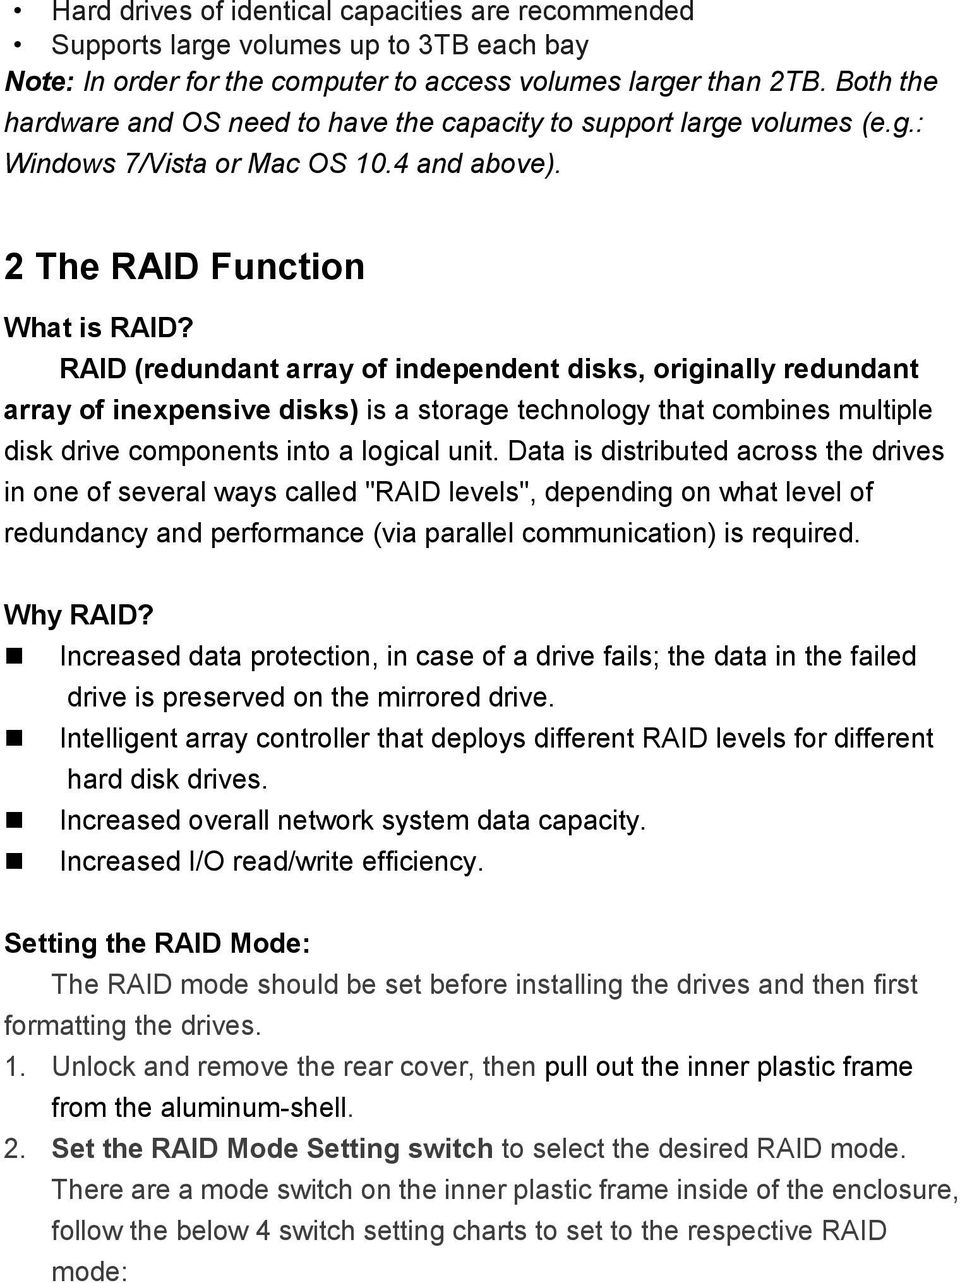 RAID (redundant array of independent disks, originally redundant array of inexpensive disks) is a storage technology that combines multiple disk drive components into a logical unit.